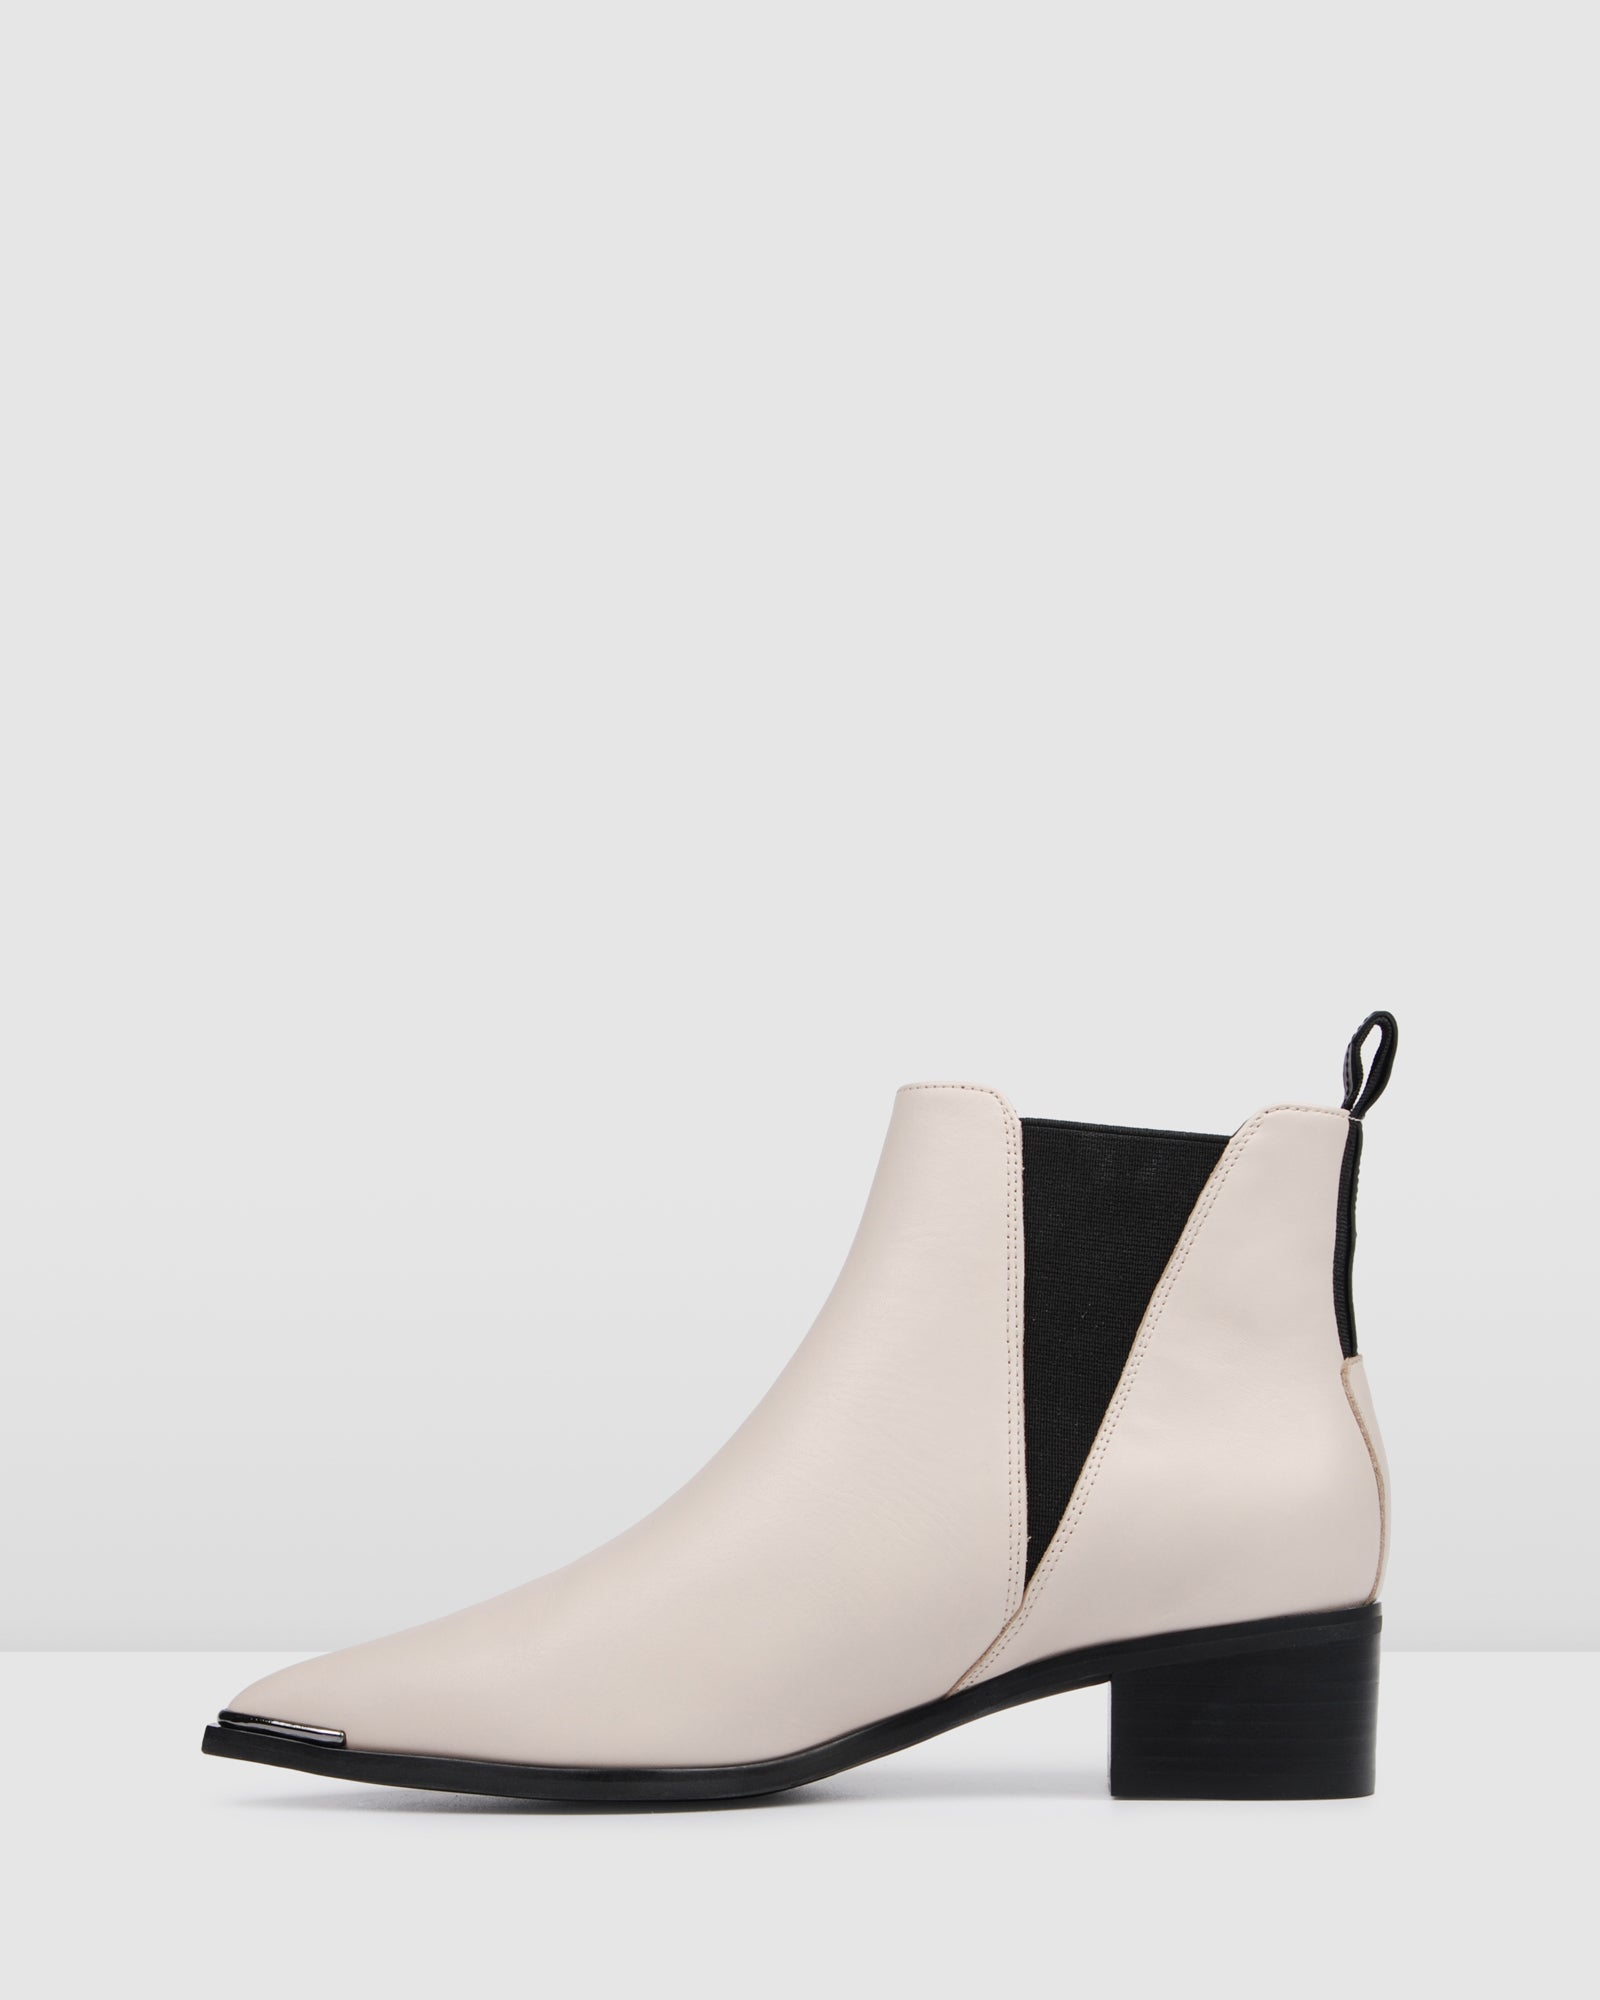 LAYLA FLAT ANKLE BOOTS BONE LEATHER